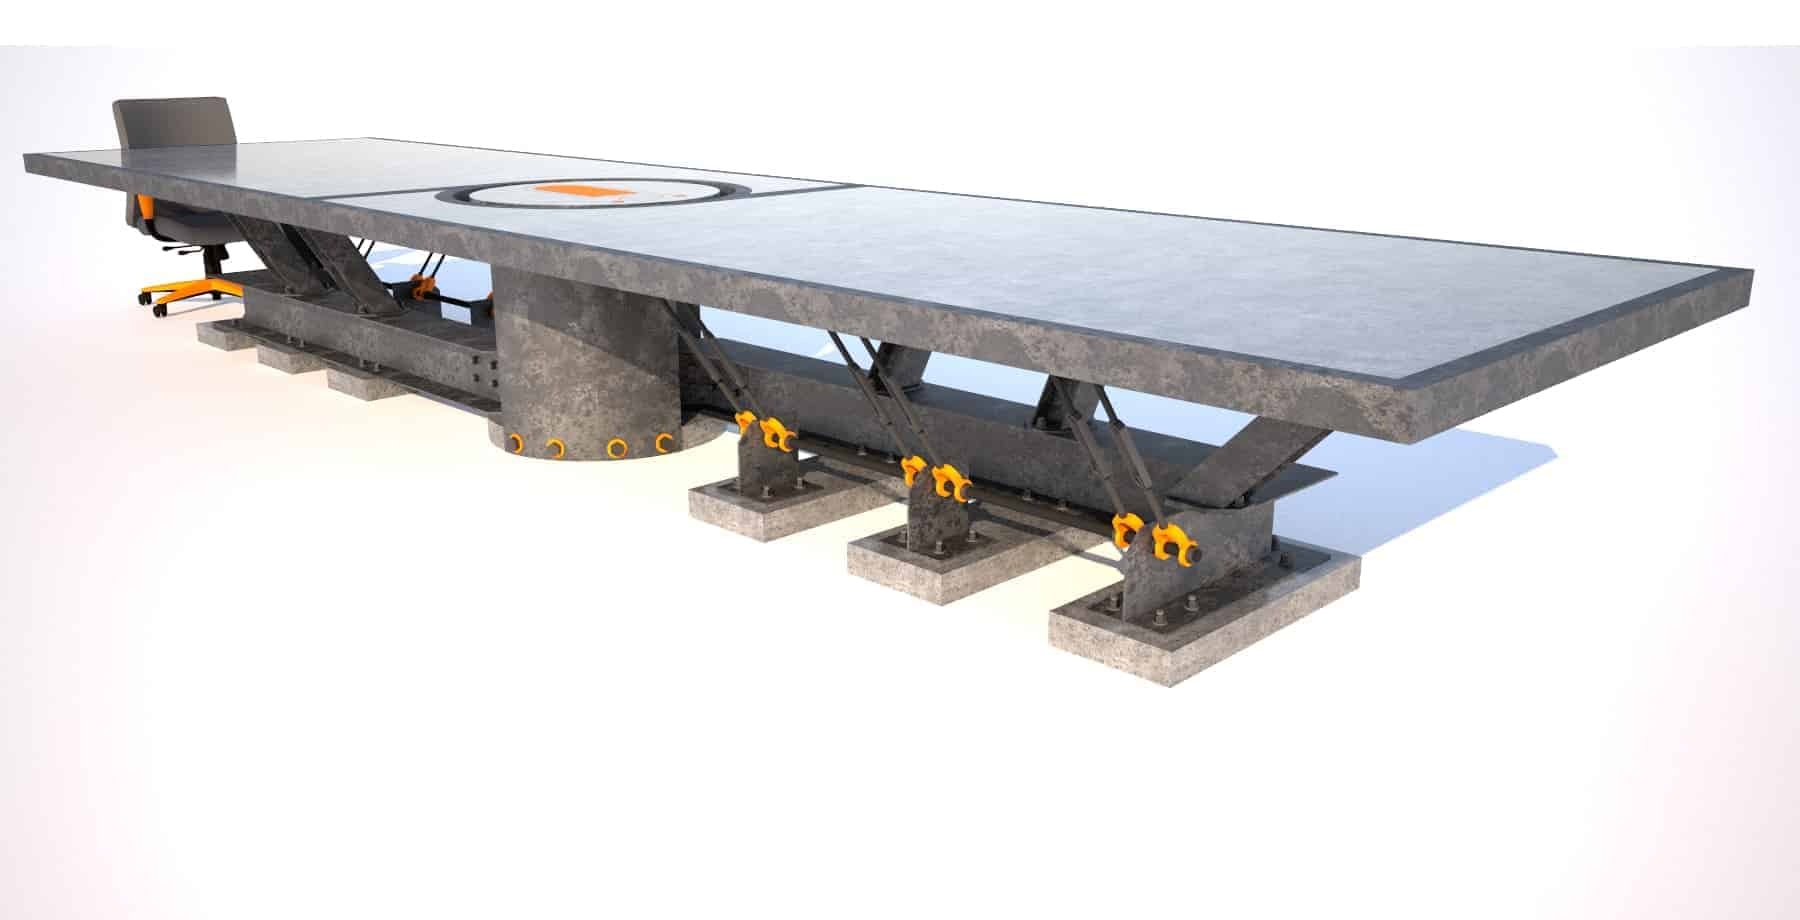 3 Steel and concrete conference room table, long angle view, Designs by Rudy